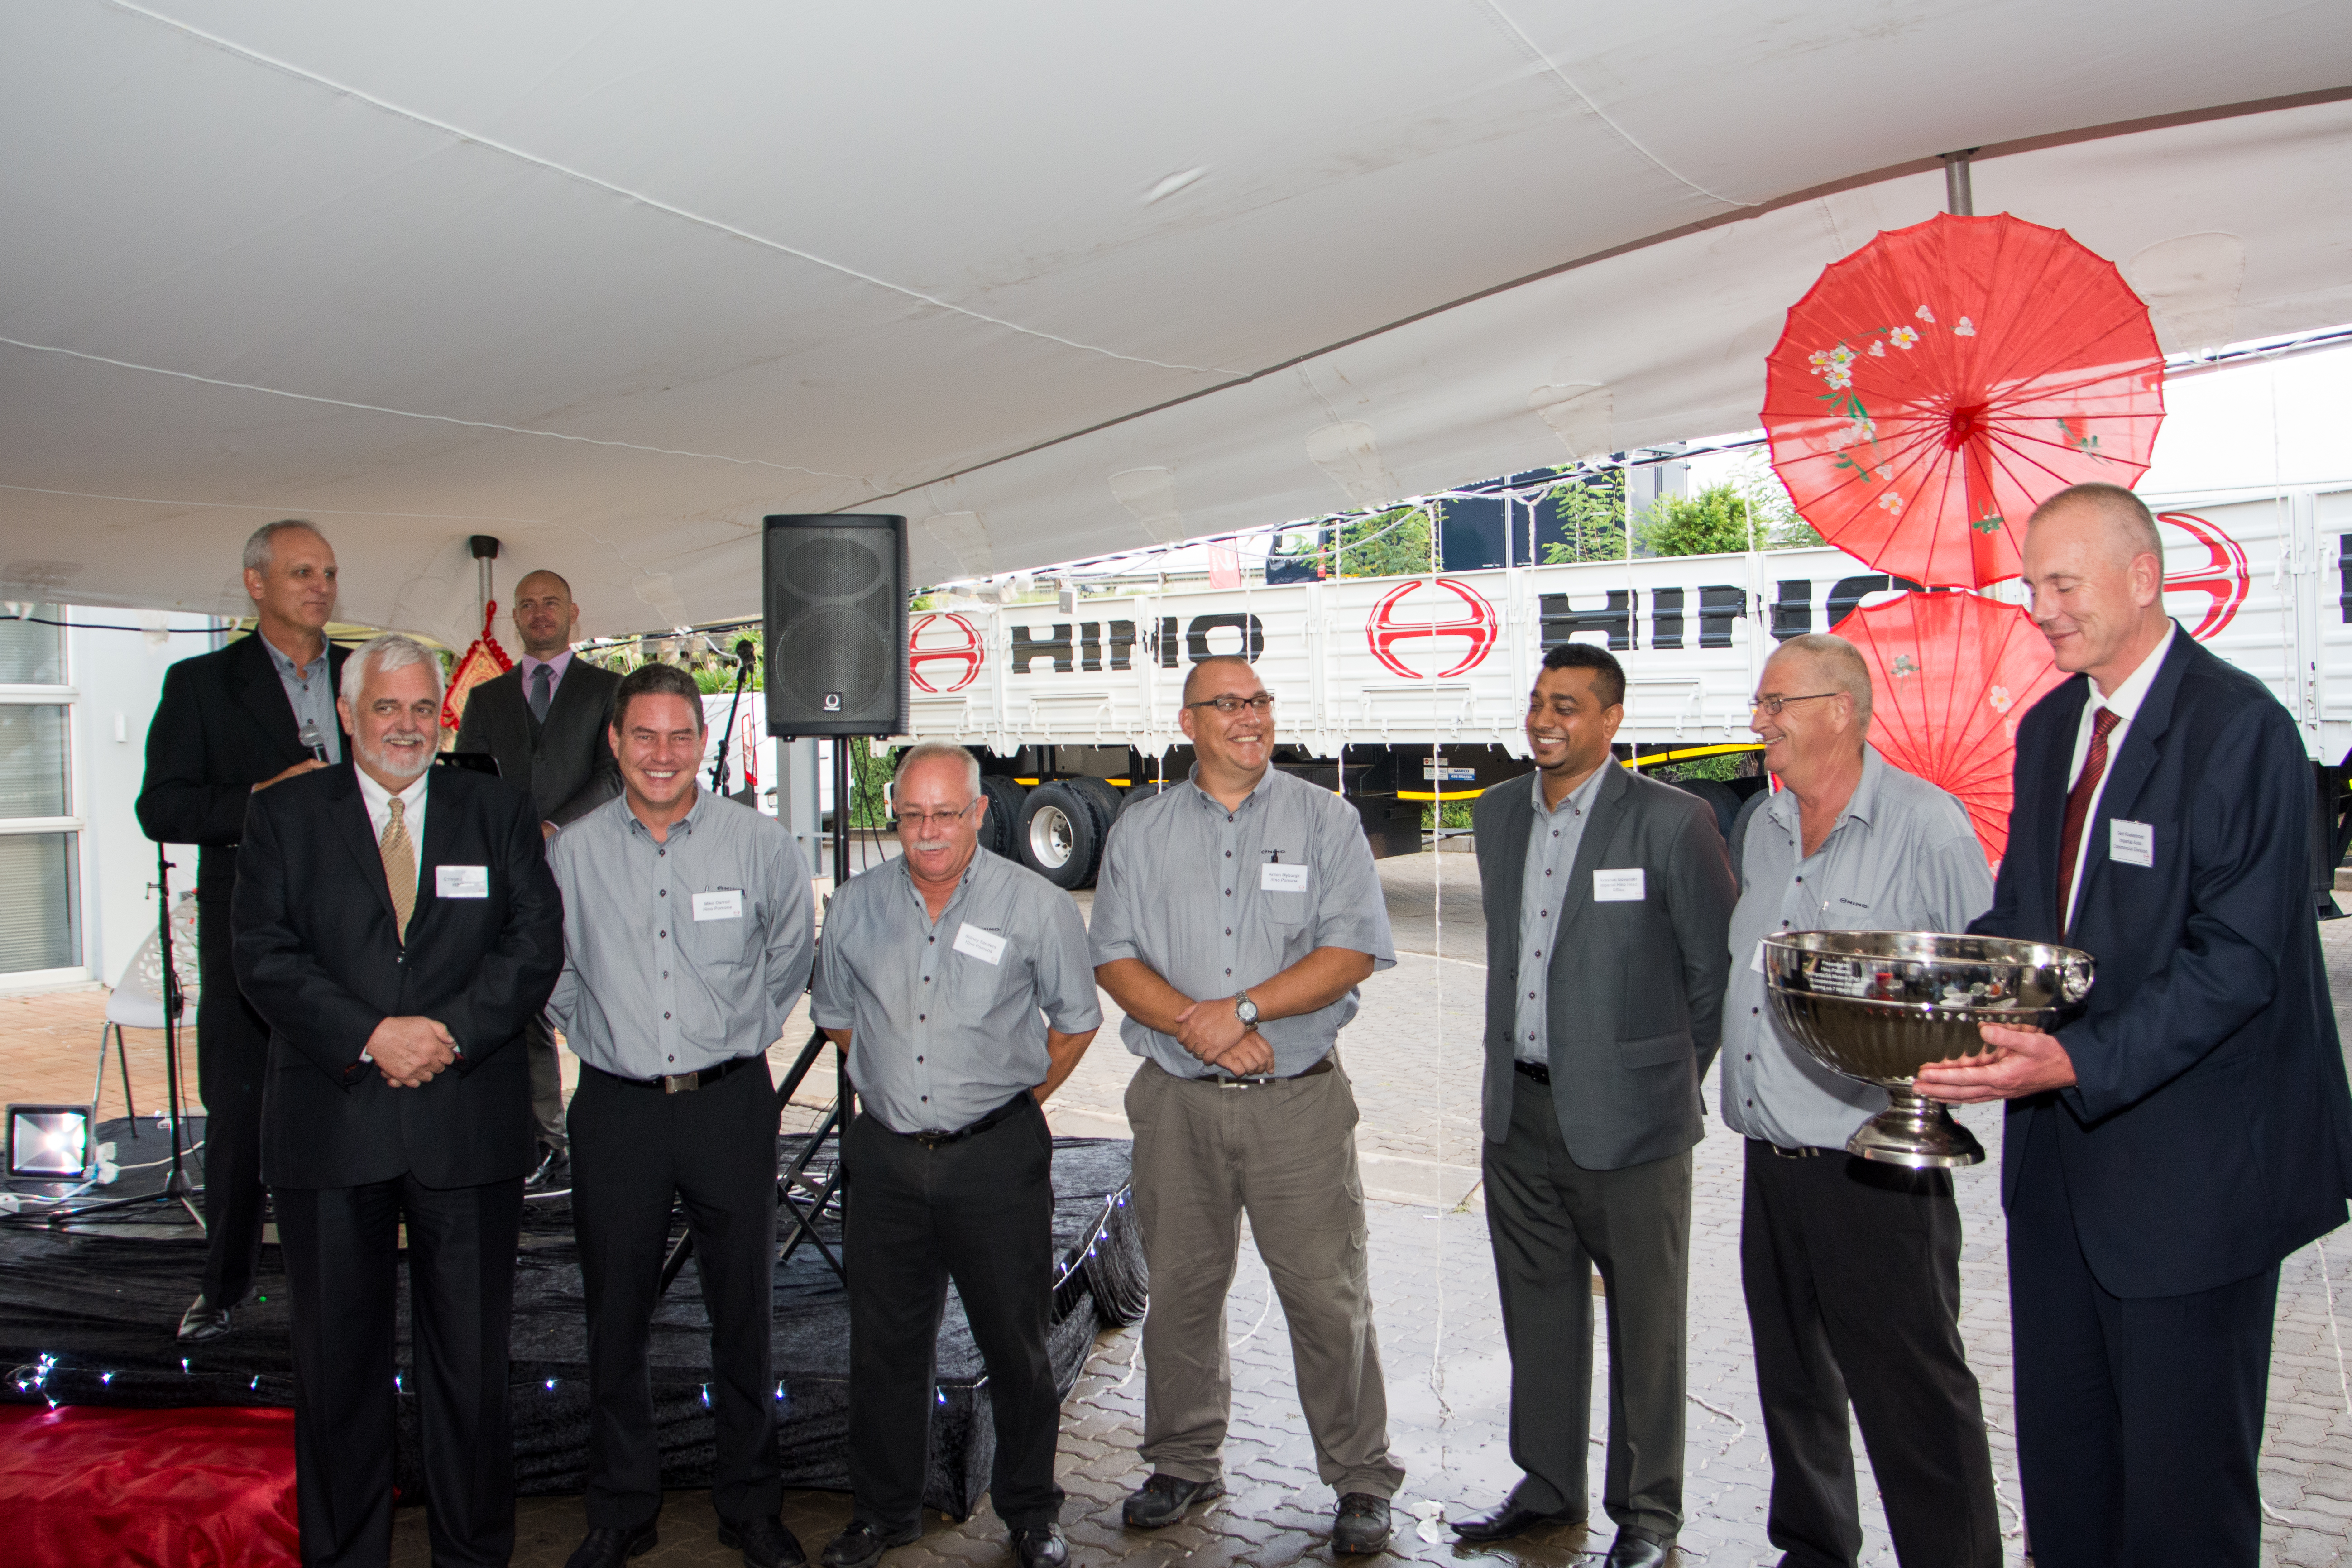 IMPERIAL HINO MOVES TO STATE-OF-ART FACILITY IN PURSUIT OF BEST-IN-TOWN DEALER STATUS